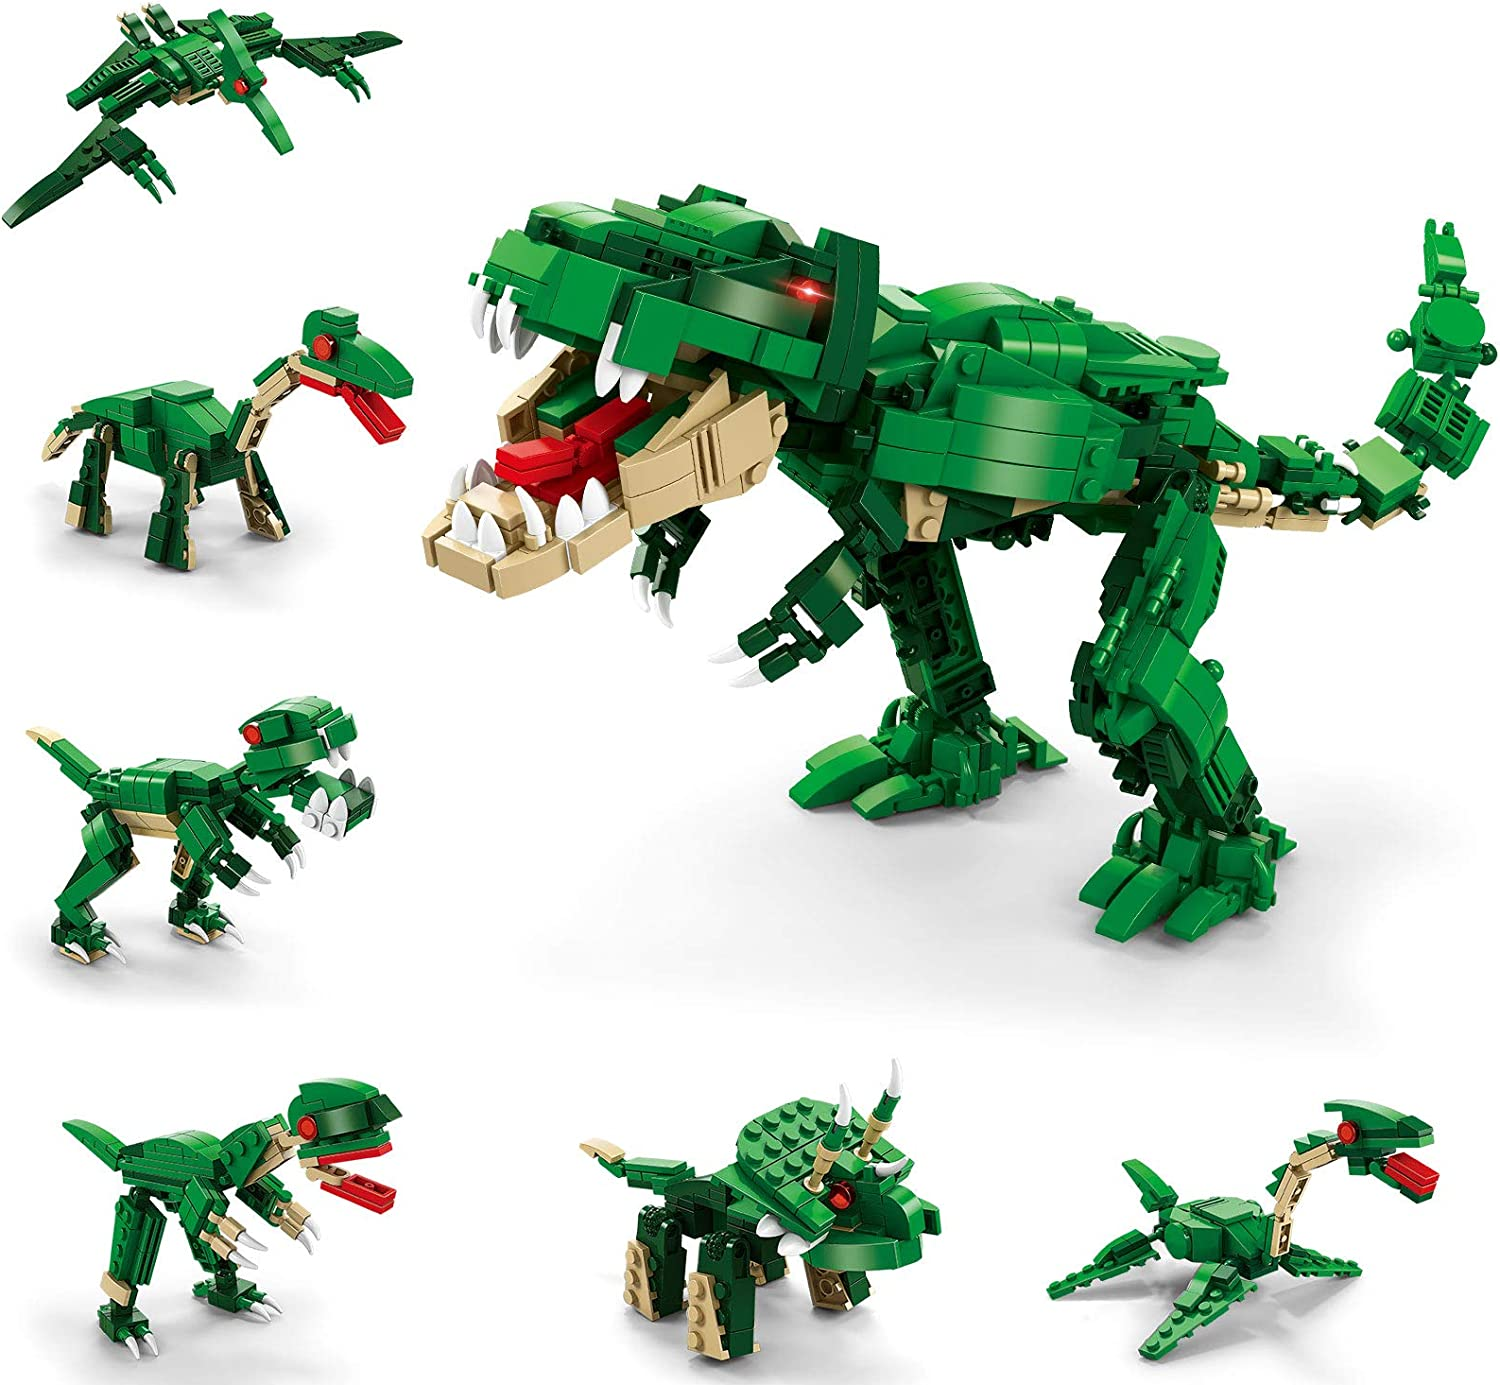 GARUNK 673 Pcs Dinosaurs Building Blocks Set, 6 in 1 Dinosaurs Building Bricks Toys for Kid, Educational Construction Engineering Learning Toy Set for Boys Gift Age 6 7 8 9 10 11 12 Year Old